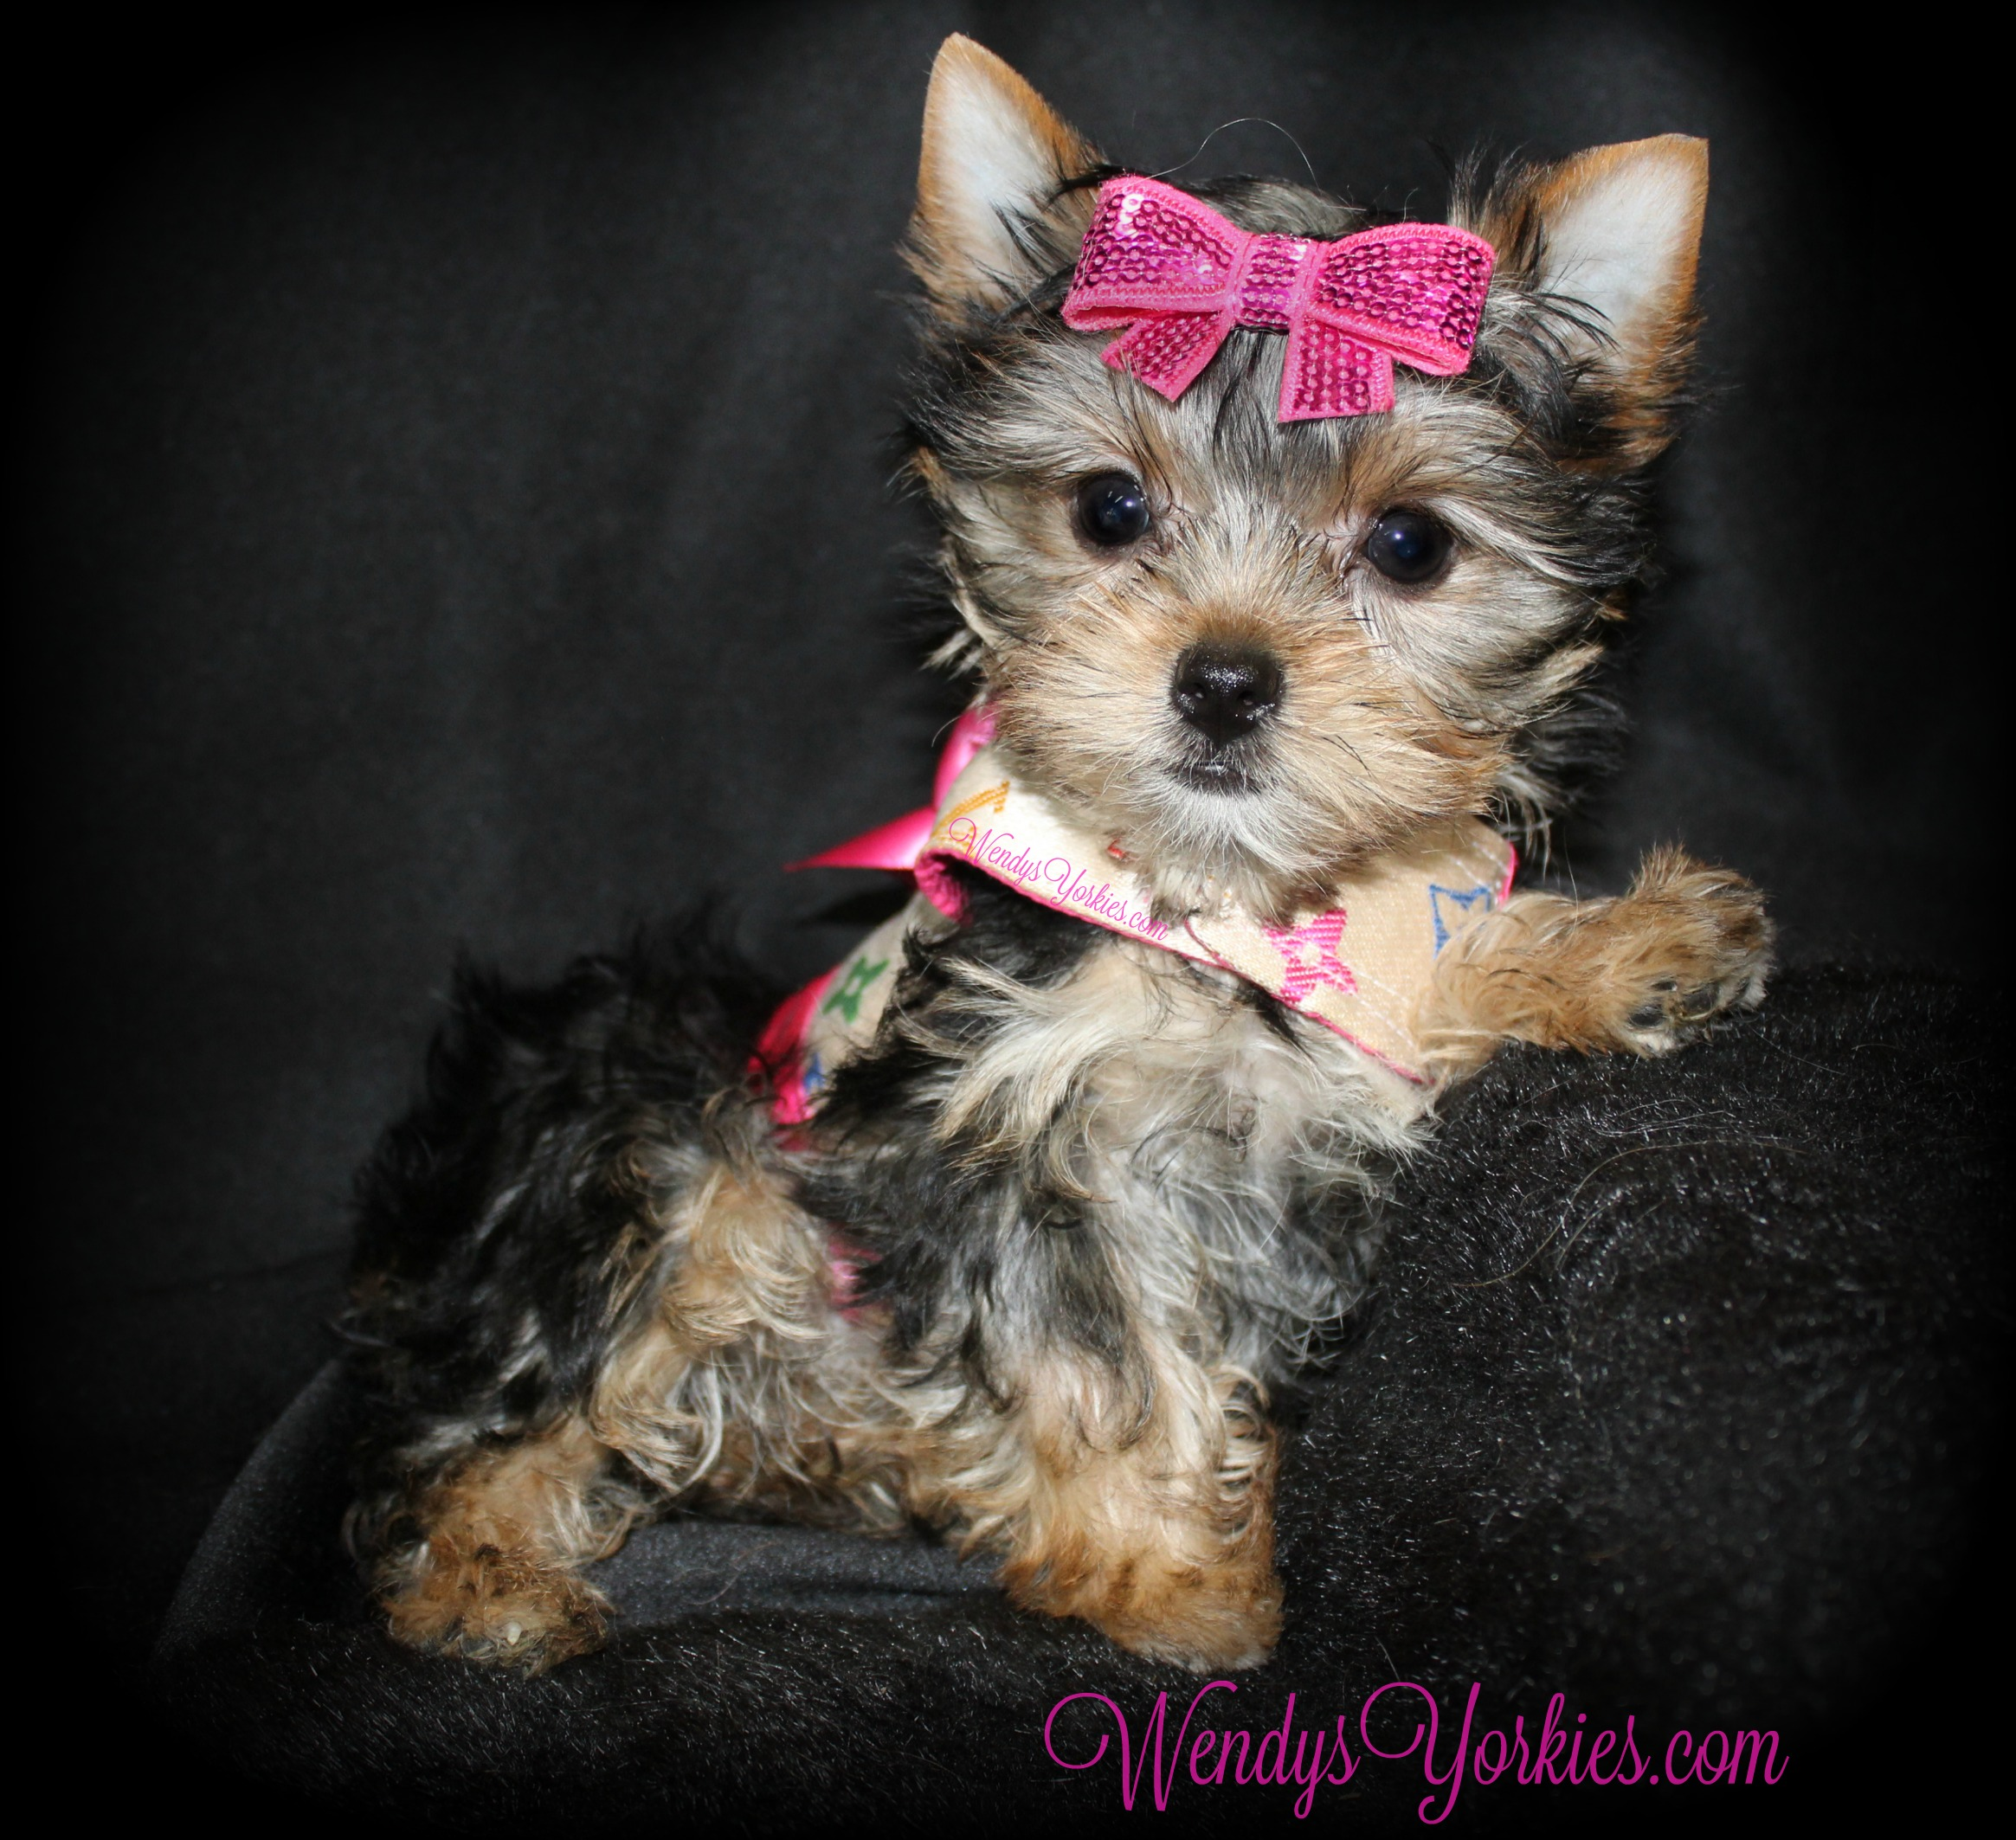 Tiny Teacup Female Yorkie puppy for sale, WendysYorkies.com, Loulou f1